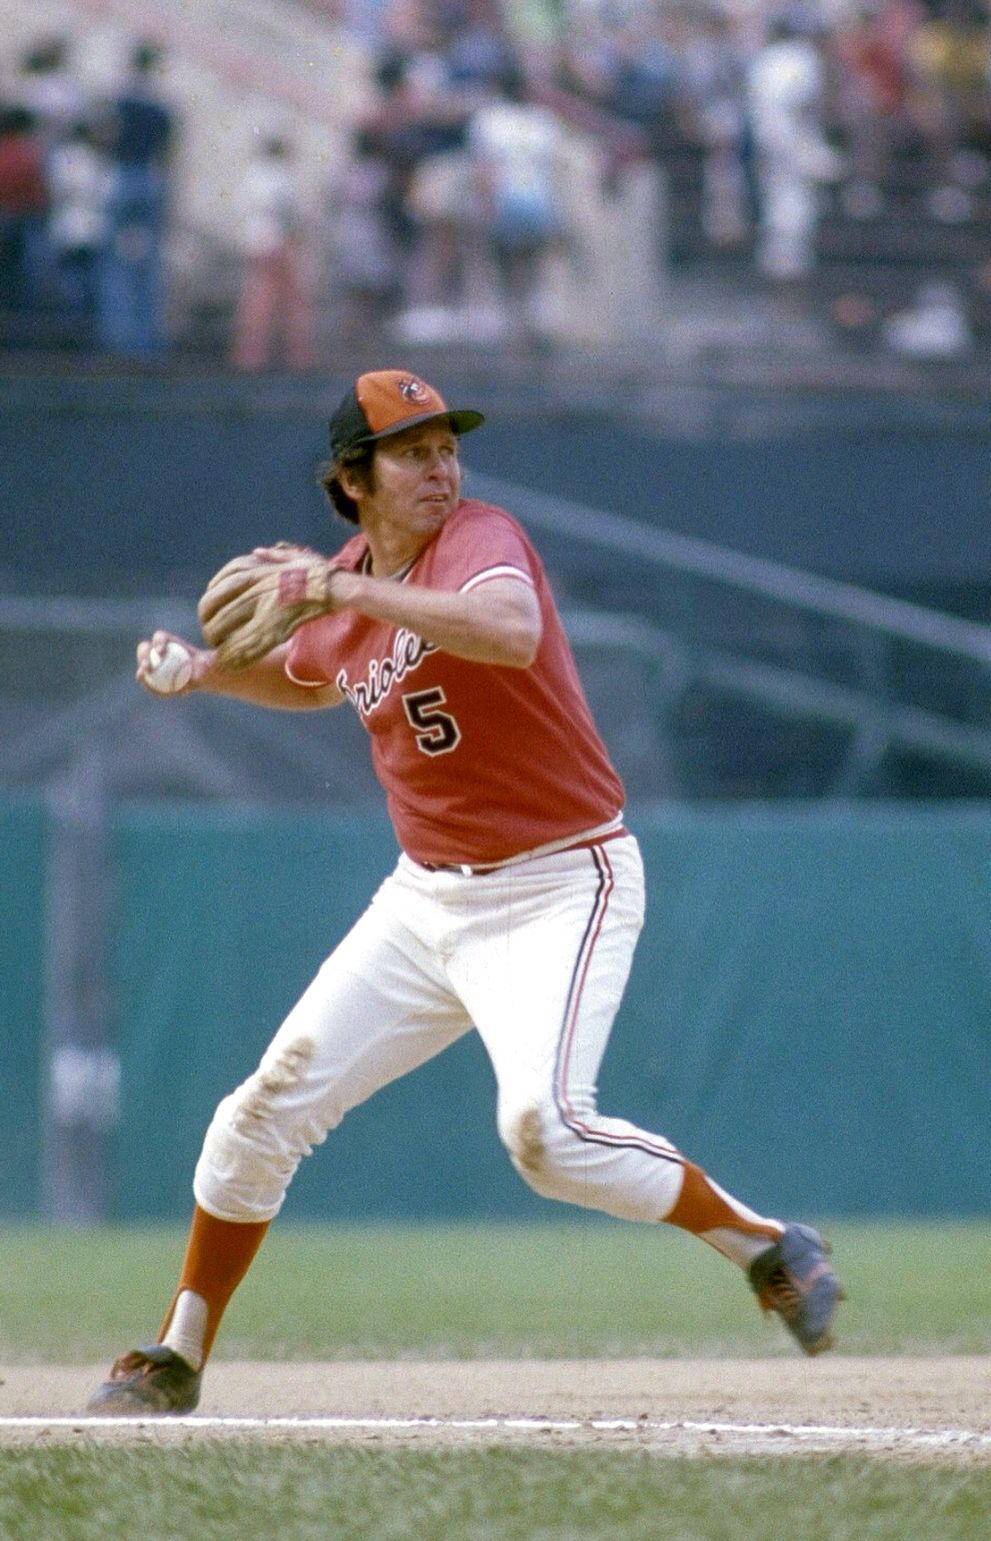 BROOKS ROBINSON ORIOLES THIRD BASE LEGEND MAKES ANOTHER GREAT PLAY 8X10